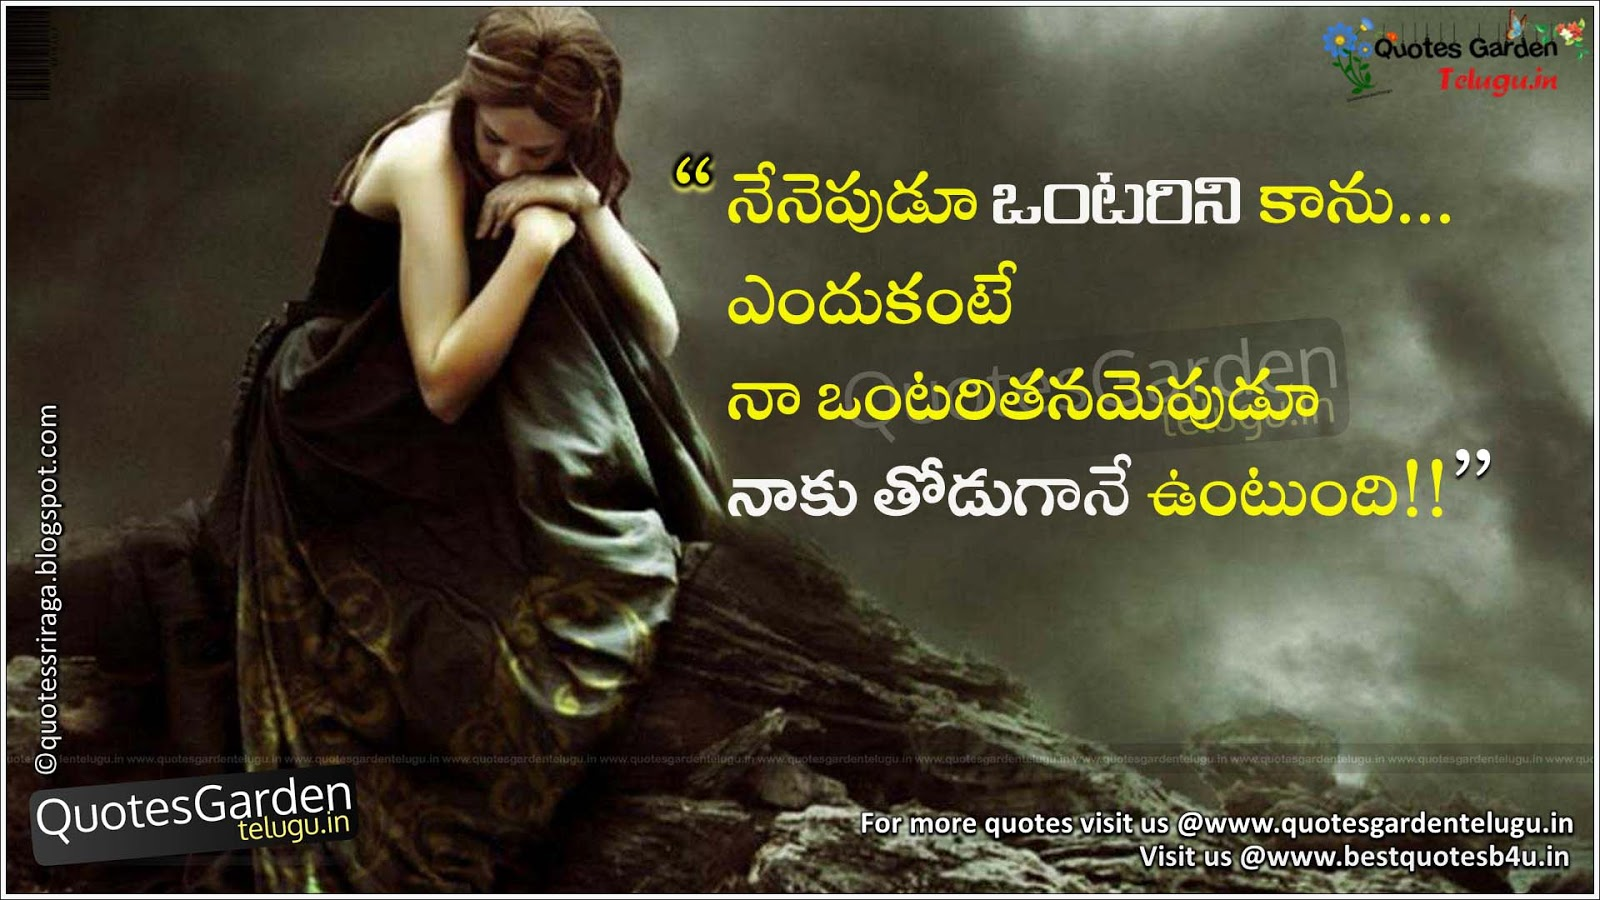 Feeling Alone Telugu Quotes Quotes Garden Telugu Telugu Quotes English Quotes Hindi Quotes